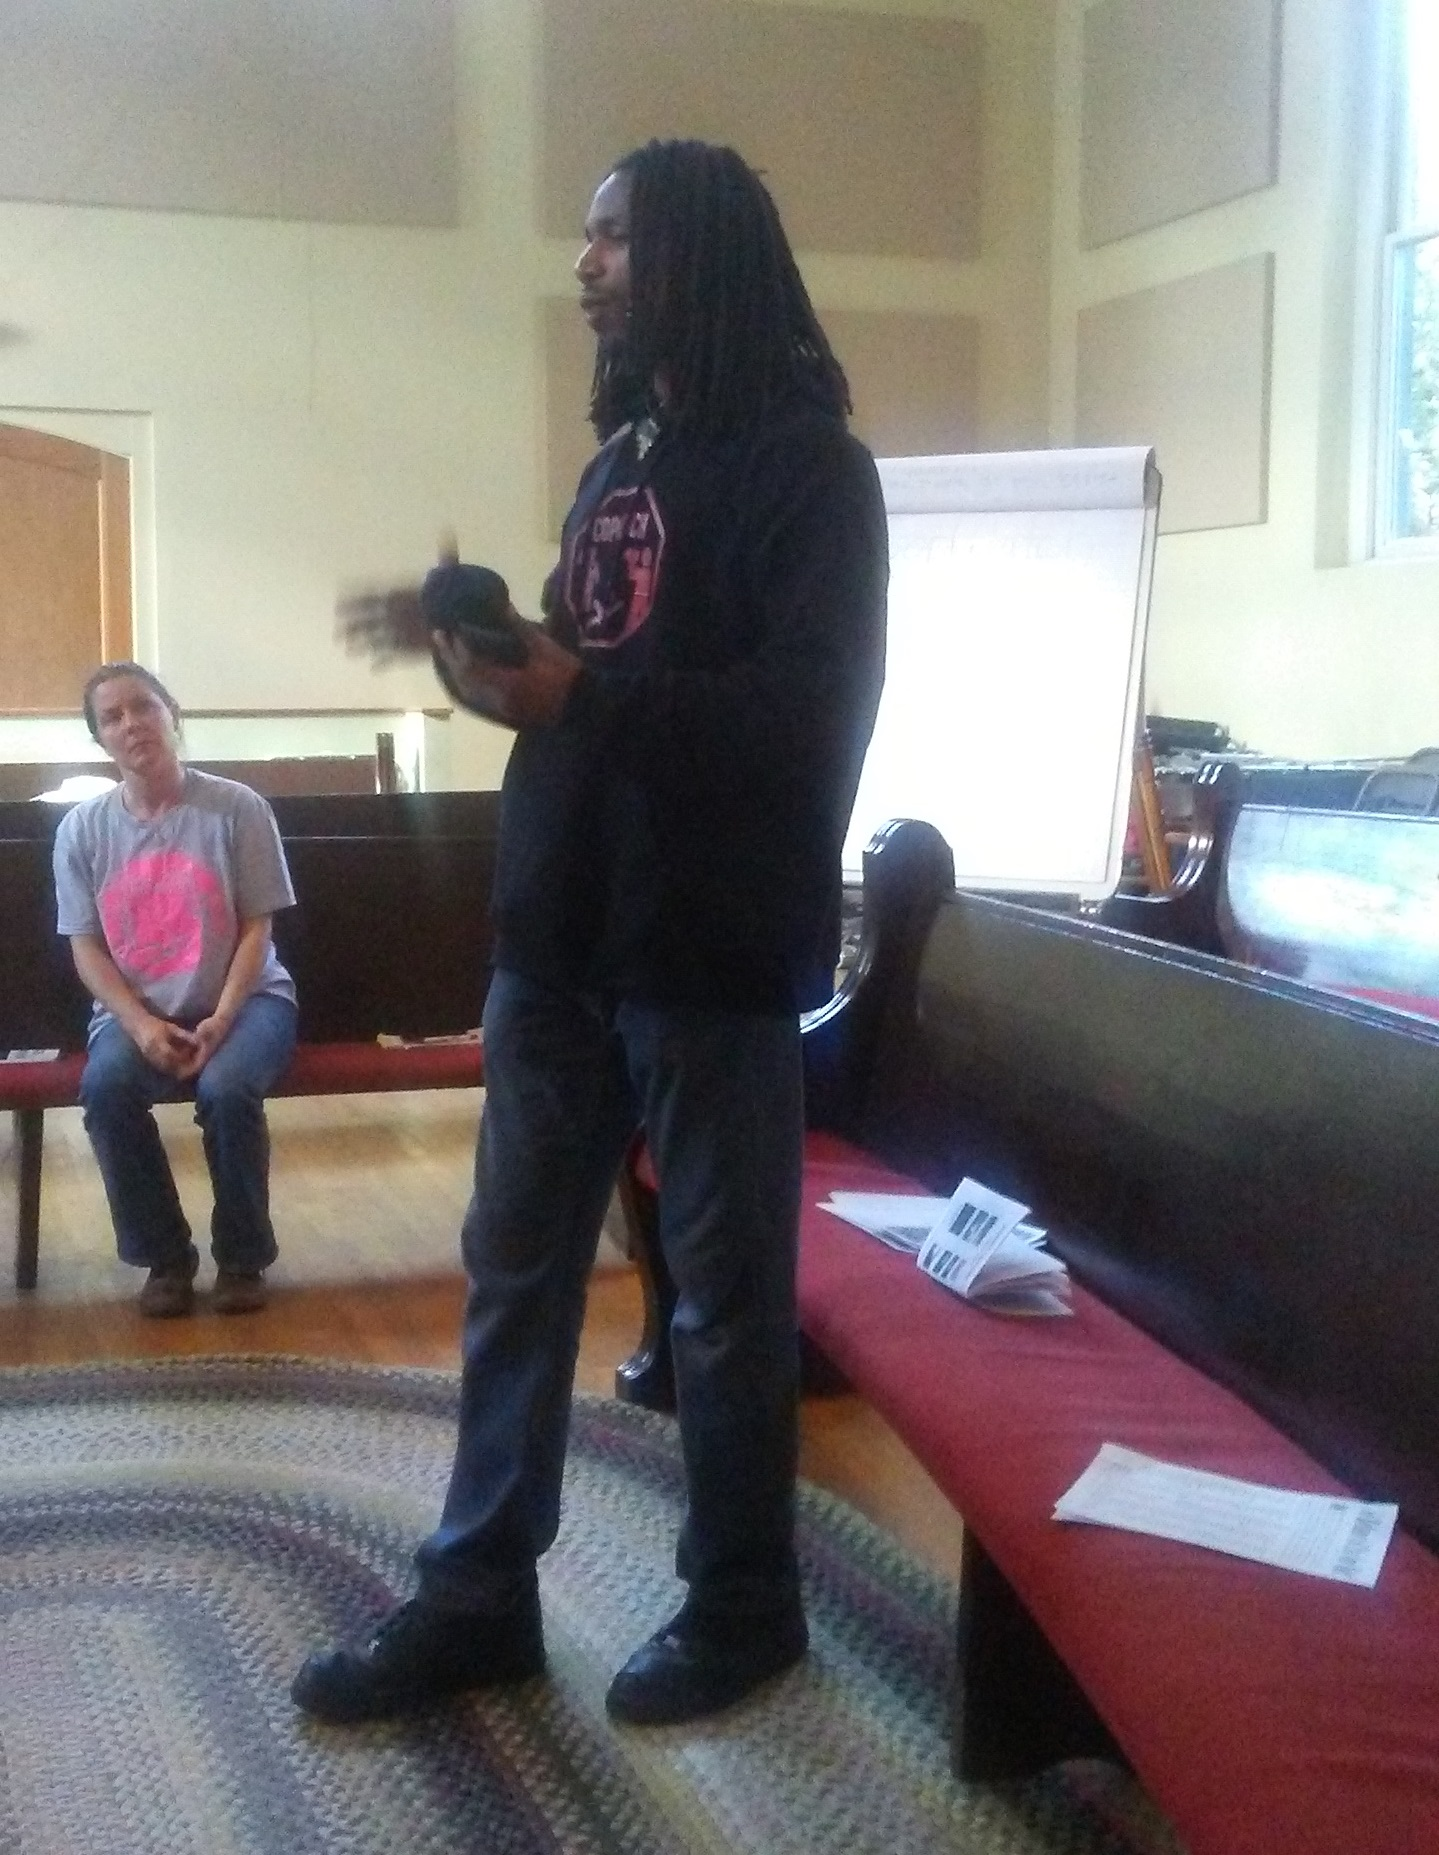 David from WeCopwatch giving the workshop; Chrissy Kirchhoeffer in background